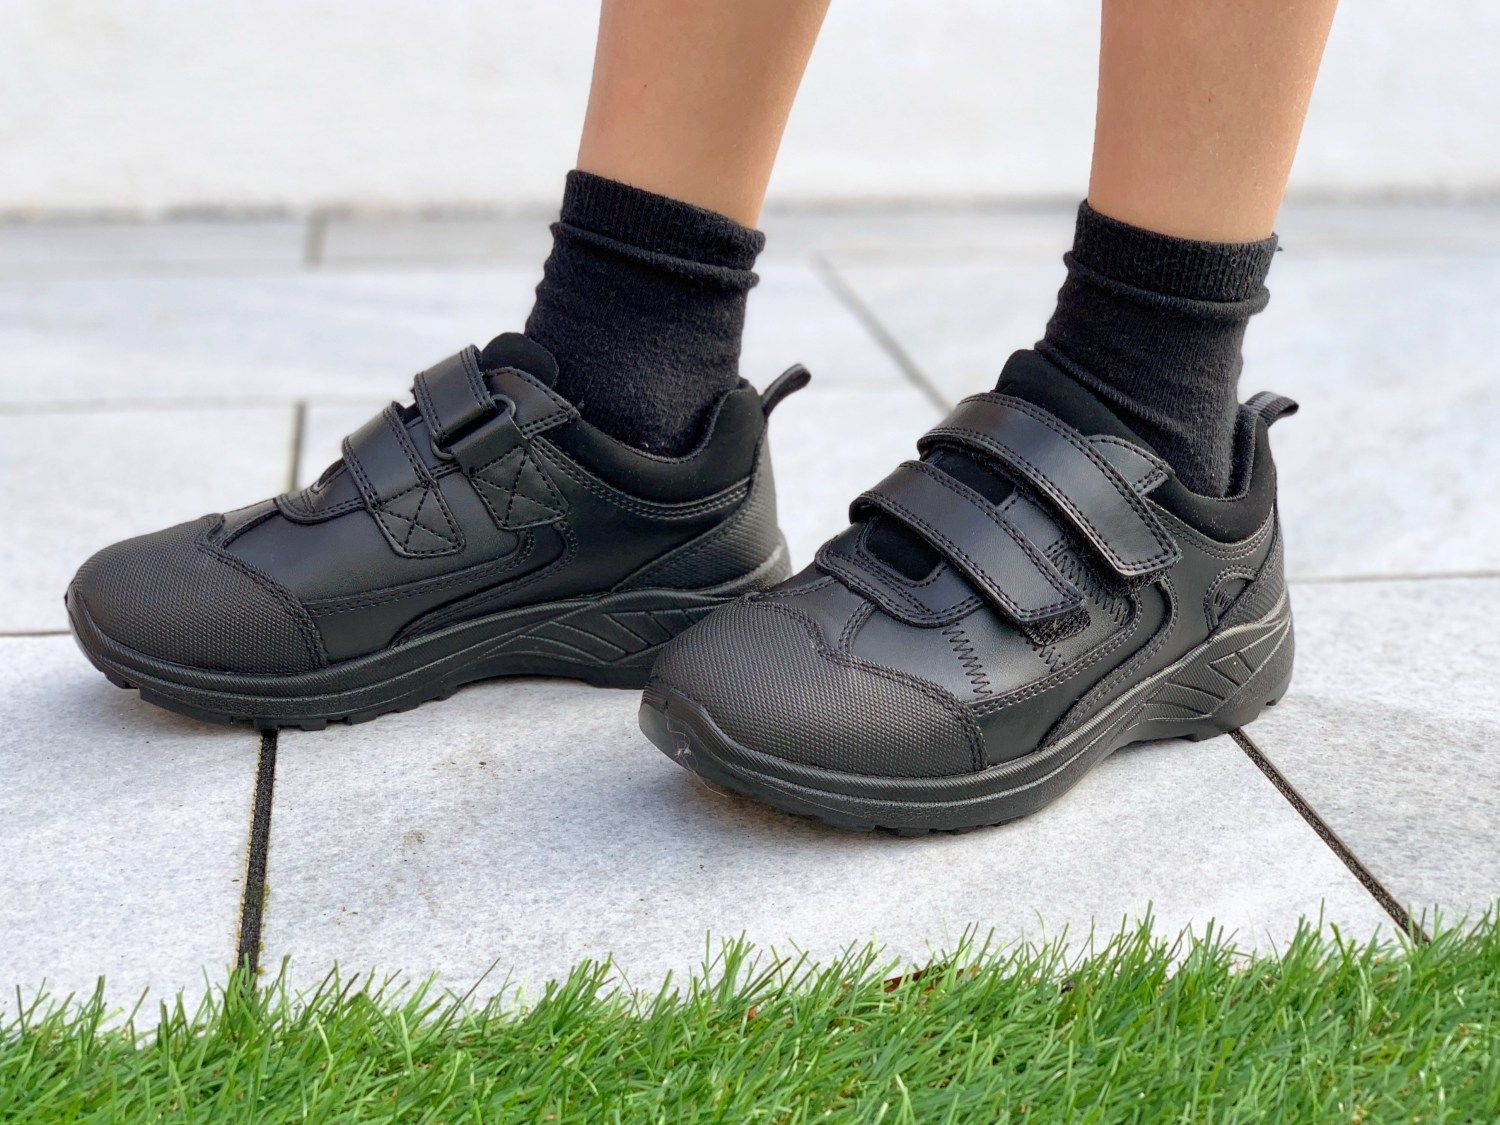 Quality school shoes for boys and girls